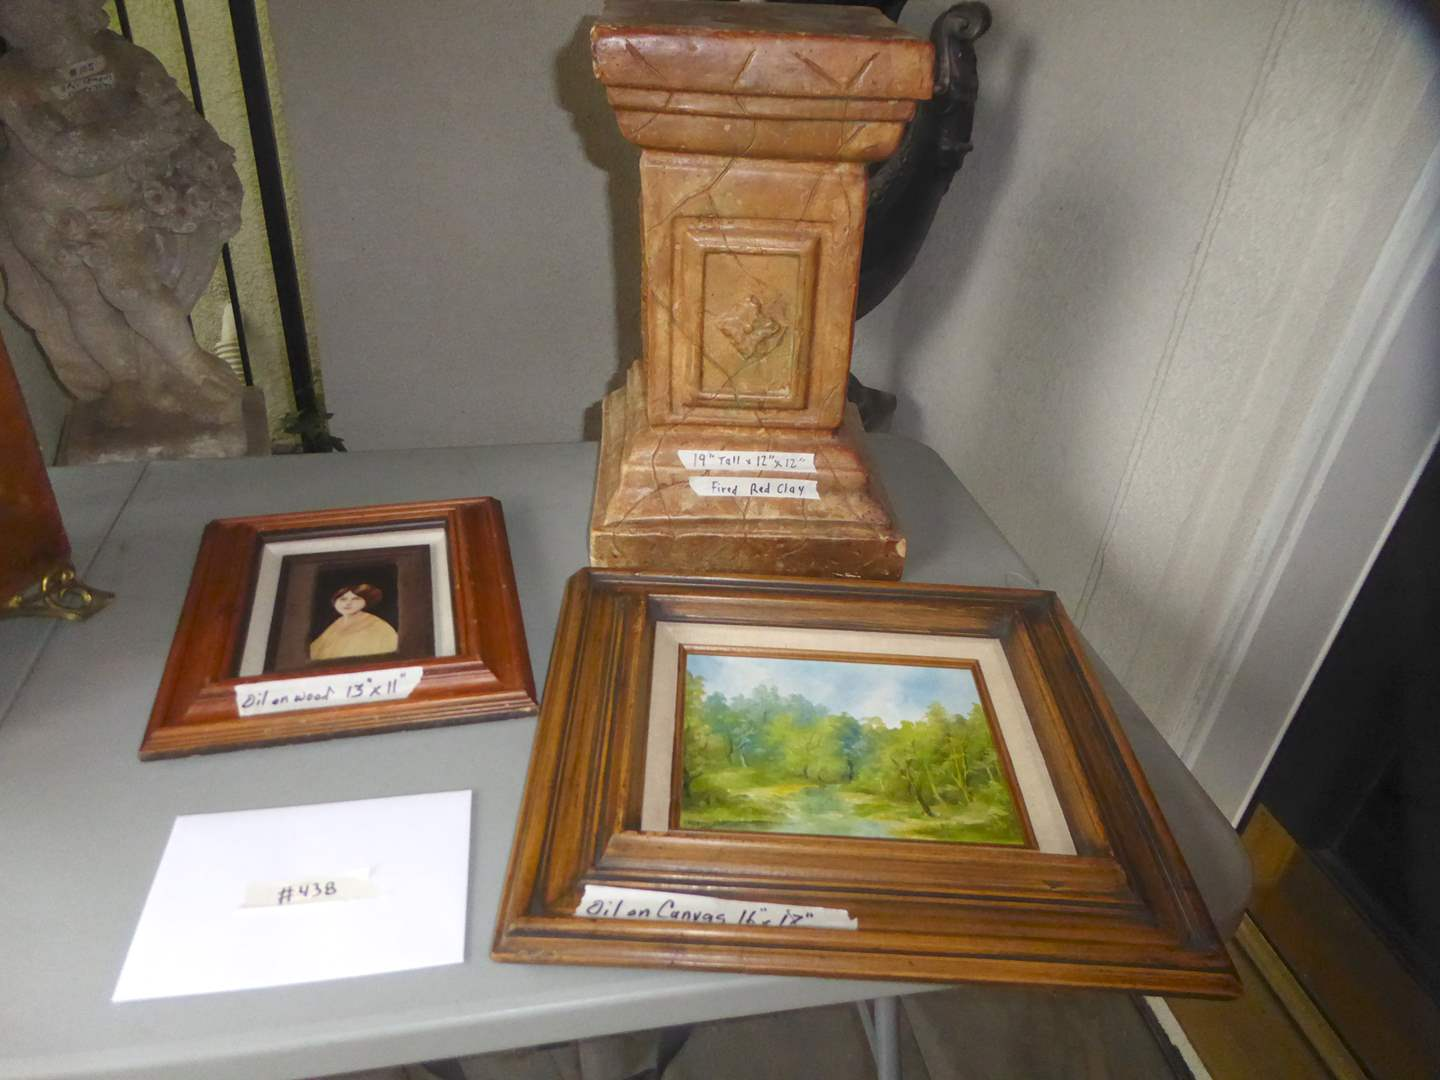 Lot # 438 - Framed Oil On Canvas, Framed Oil On Wood & Fired Red Clay Pedestal  (main image)